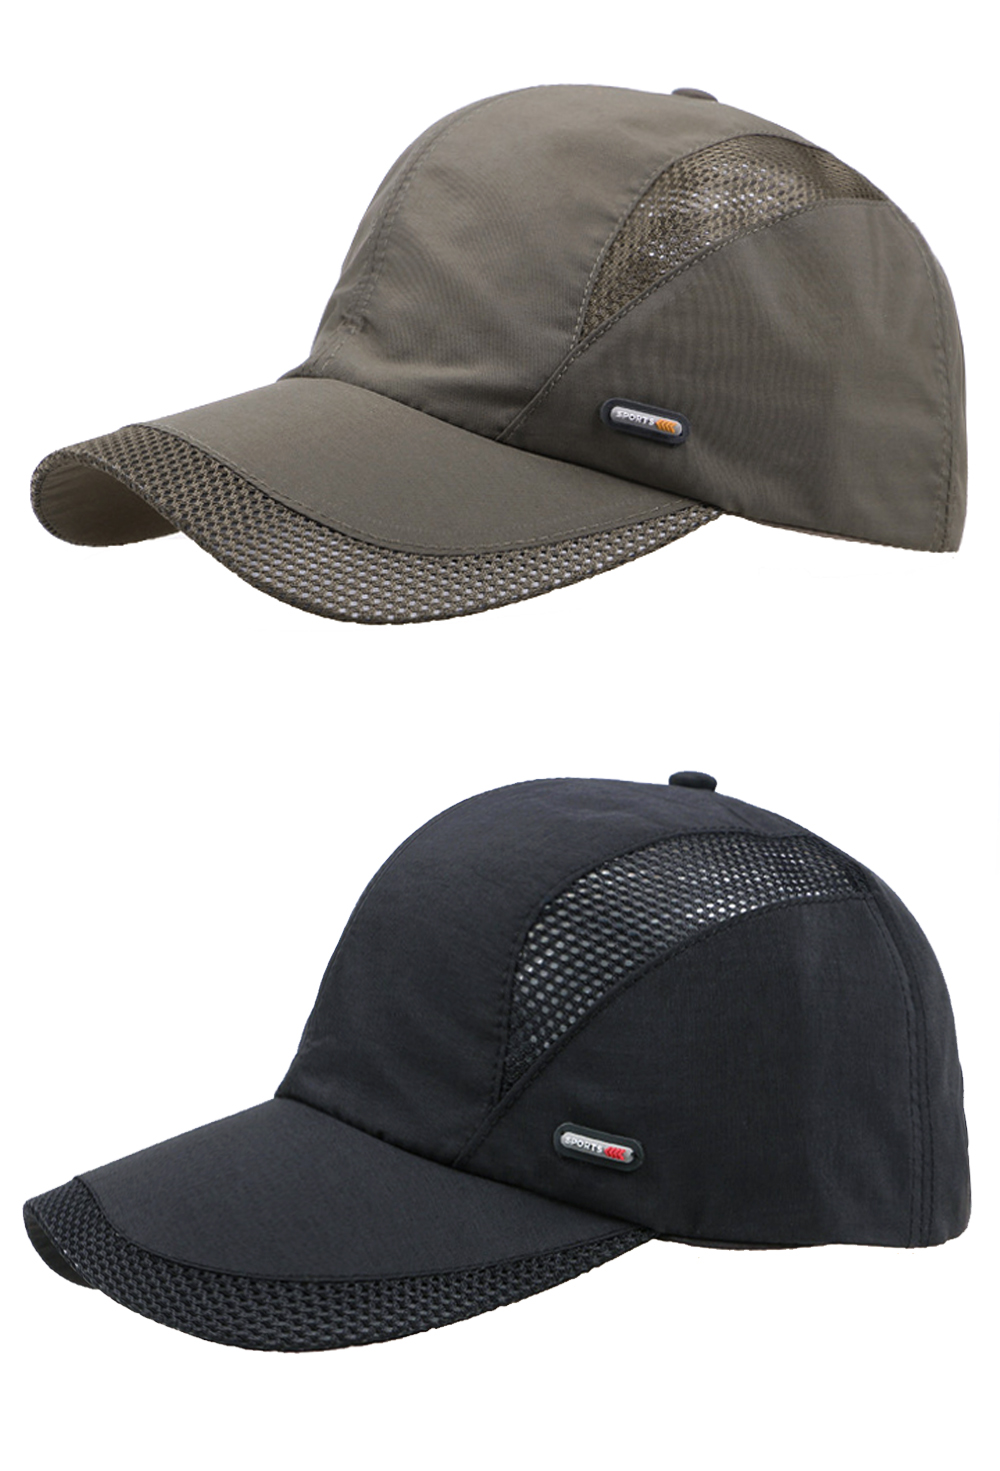 Cool Comfort Breathable Quick Dry Cap - Army Green Cap and Black Cap Front Angle Side Views